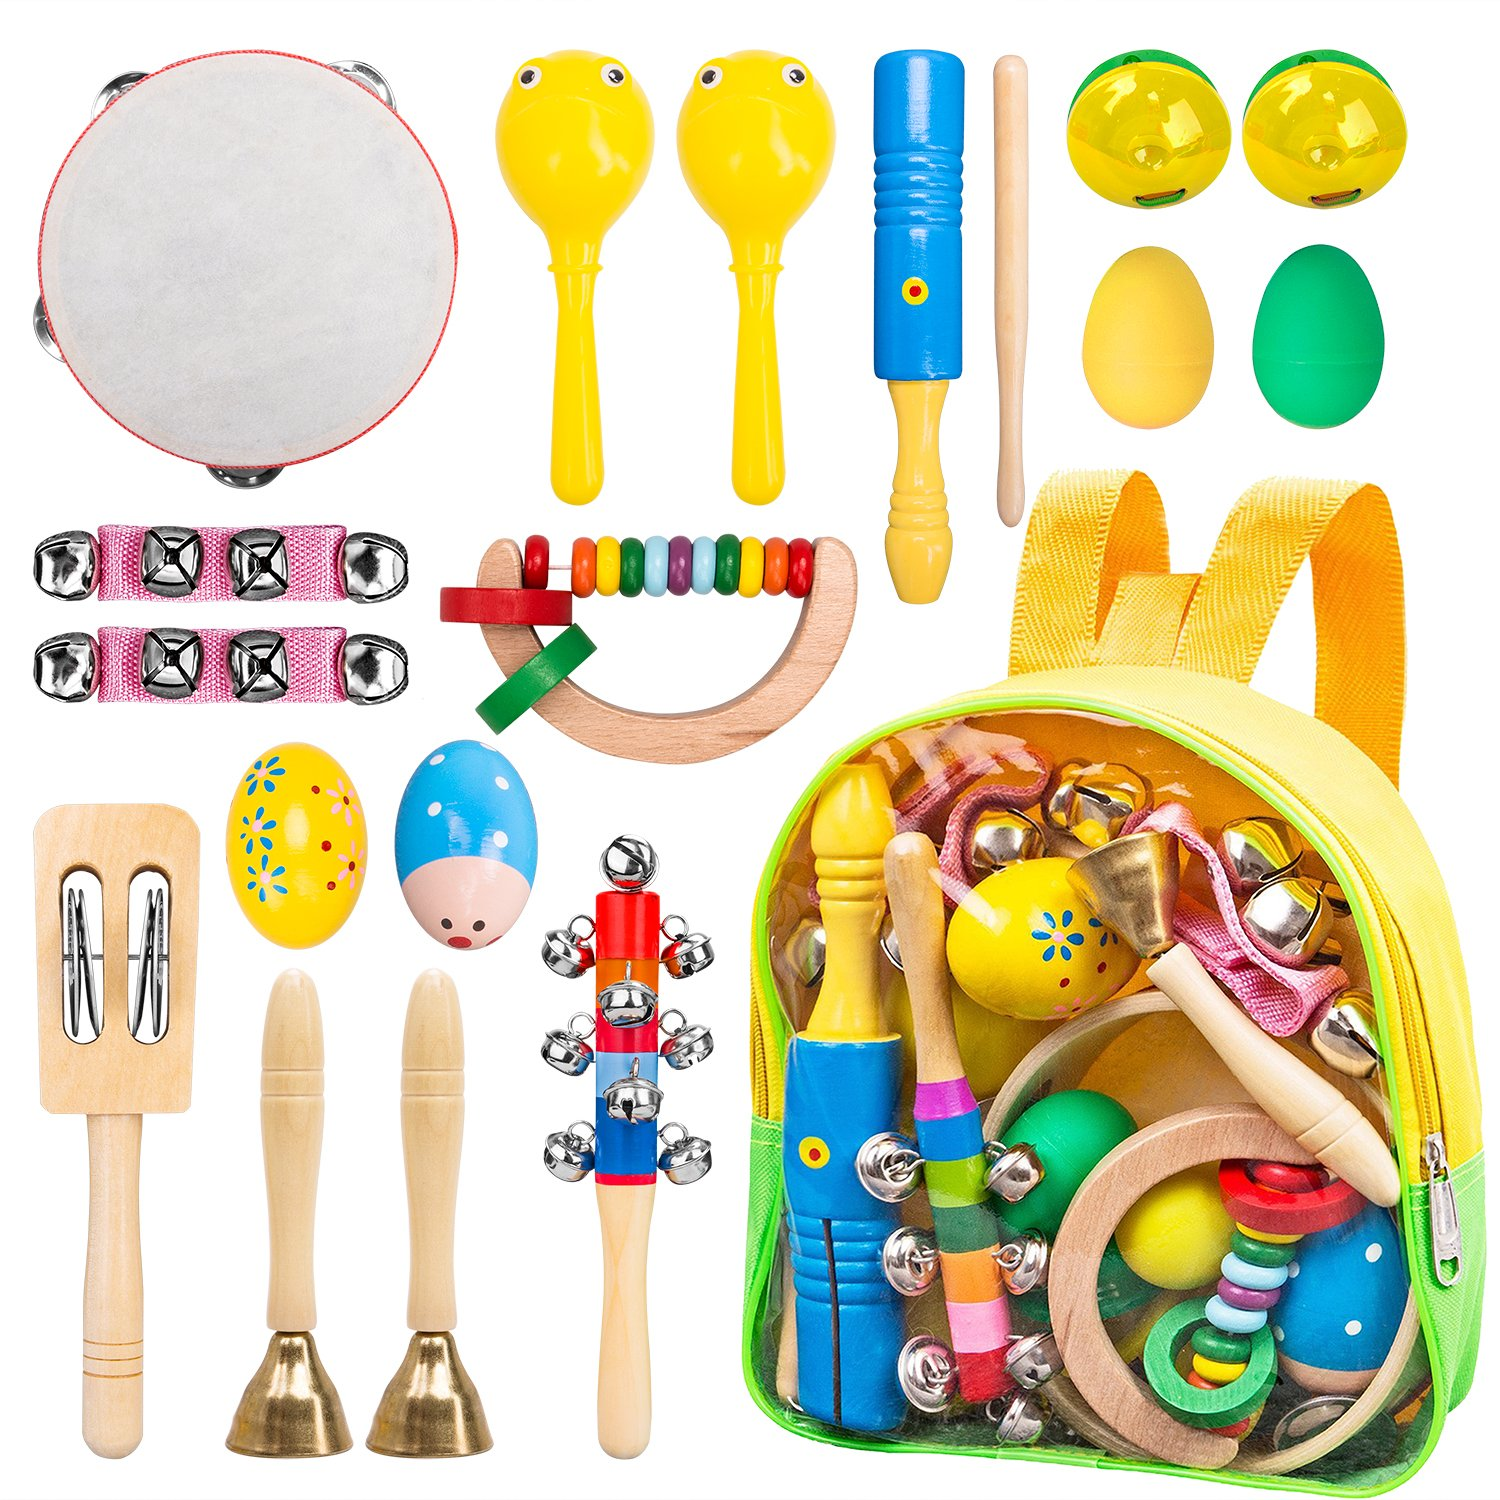 INNOCHEER Kids Musical Instruments, ASTM Certified, FDA Approved, Toddler Wooden Musical Toys with Backpack, 17 Pieces Newever a-001